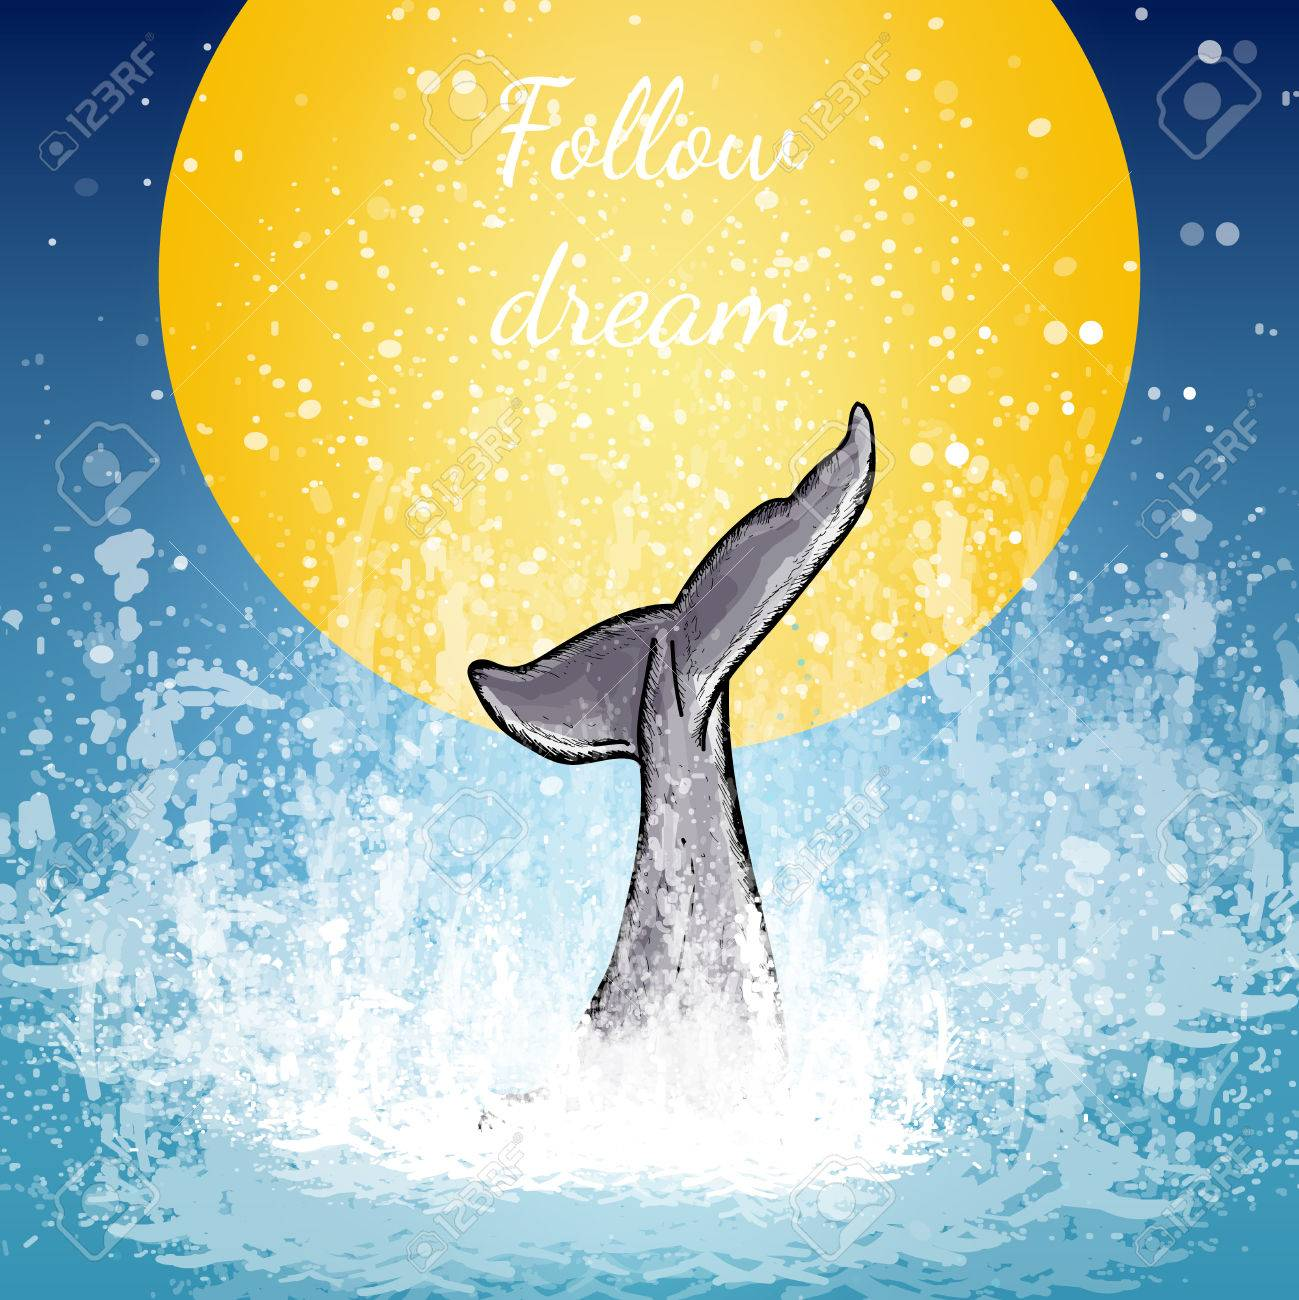 Tail of the whale art, whale dives into the water background of the moon follow dream poster vector - 59654559